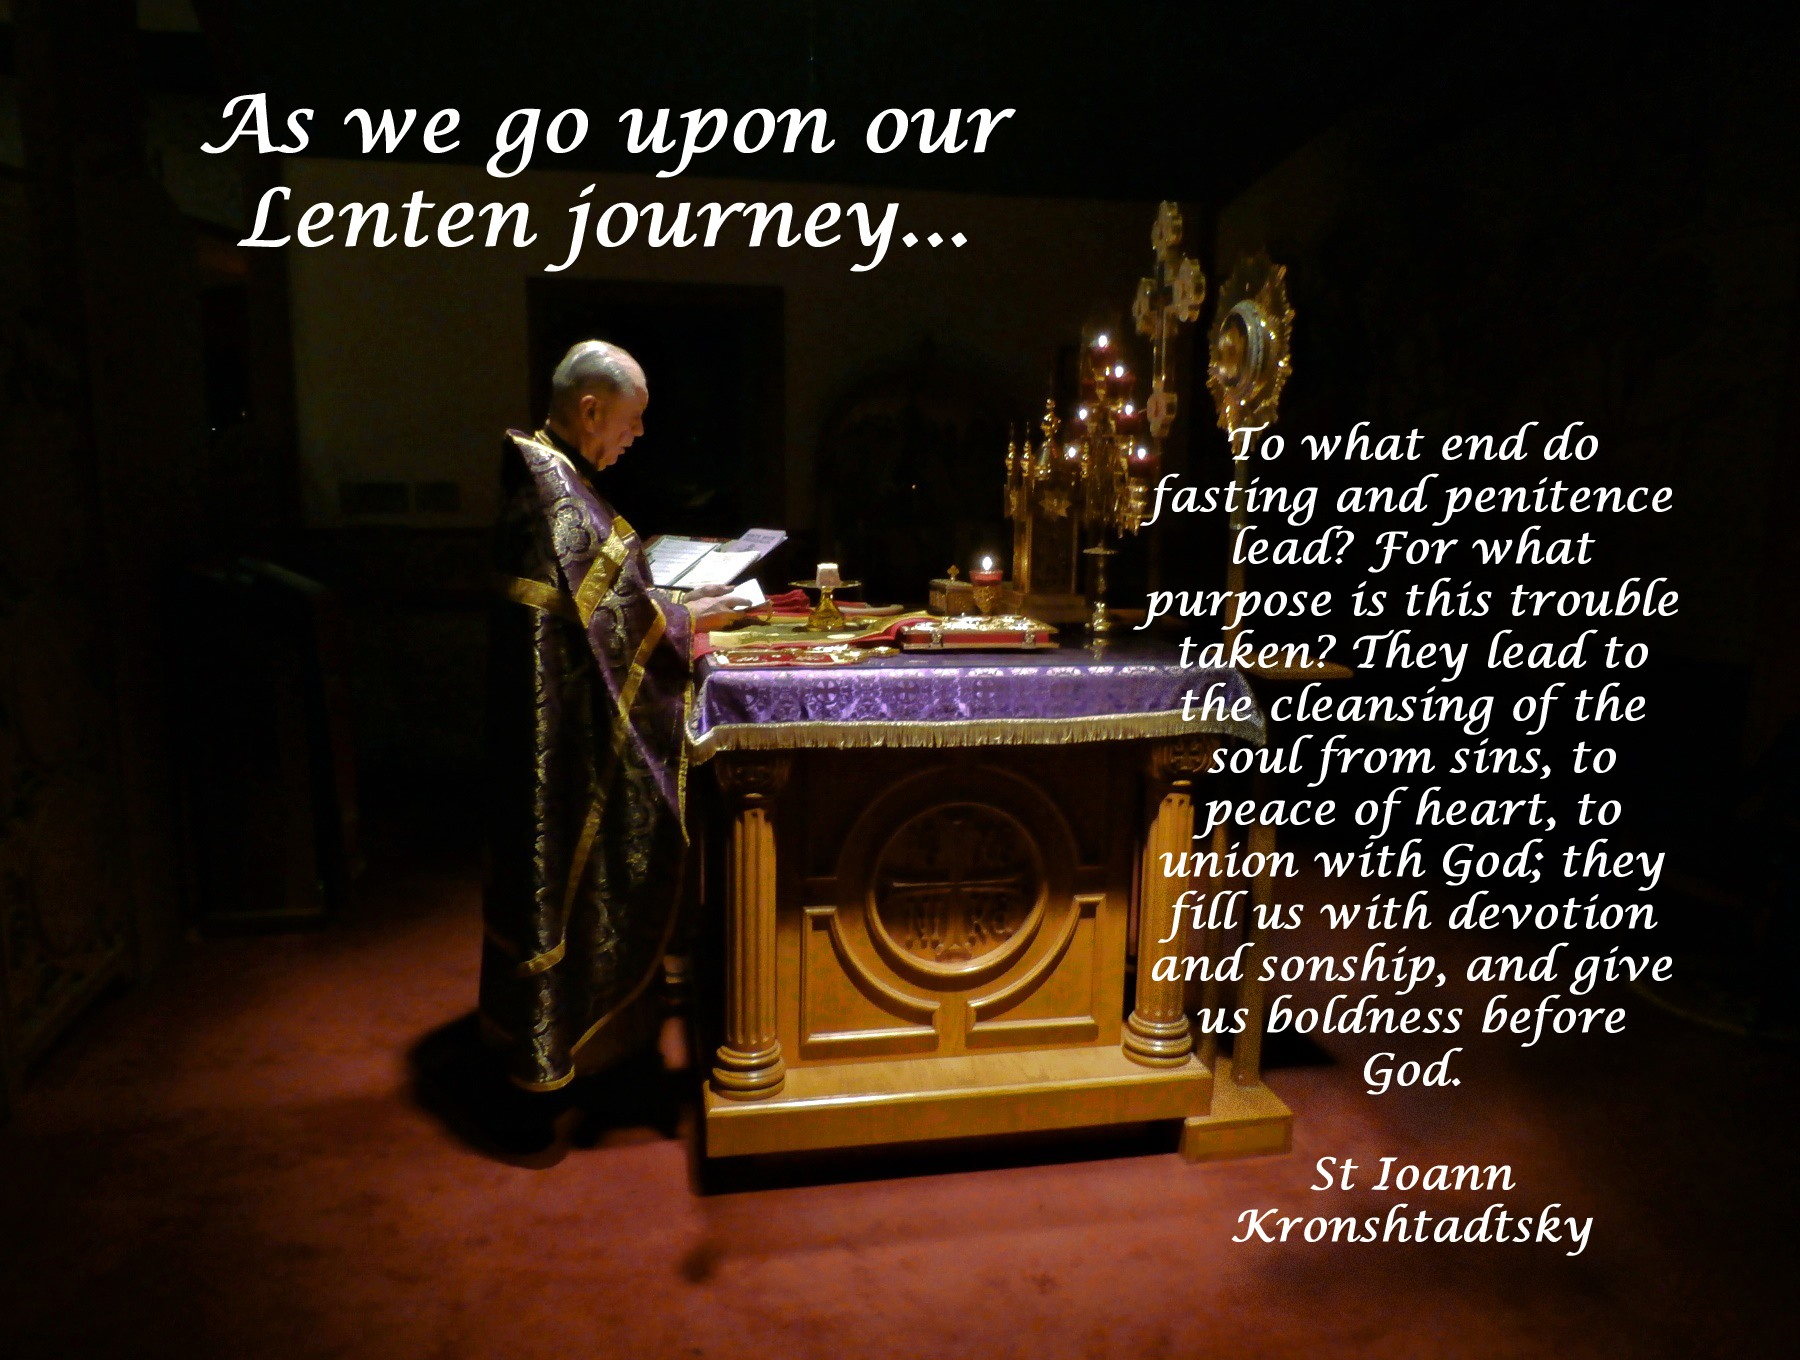 00 As we go upon our lenten journey. 11.03.15